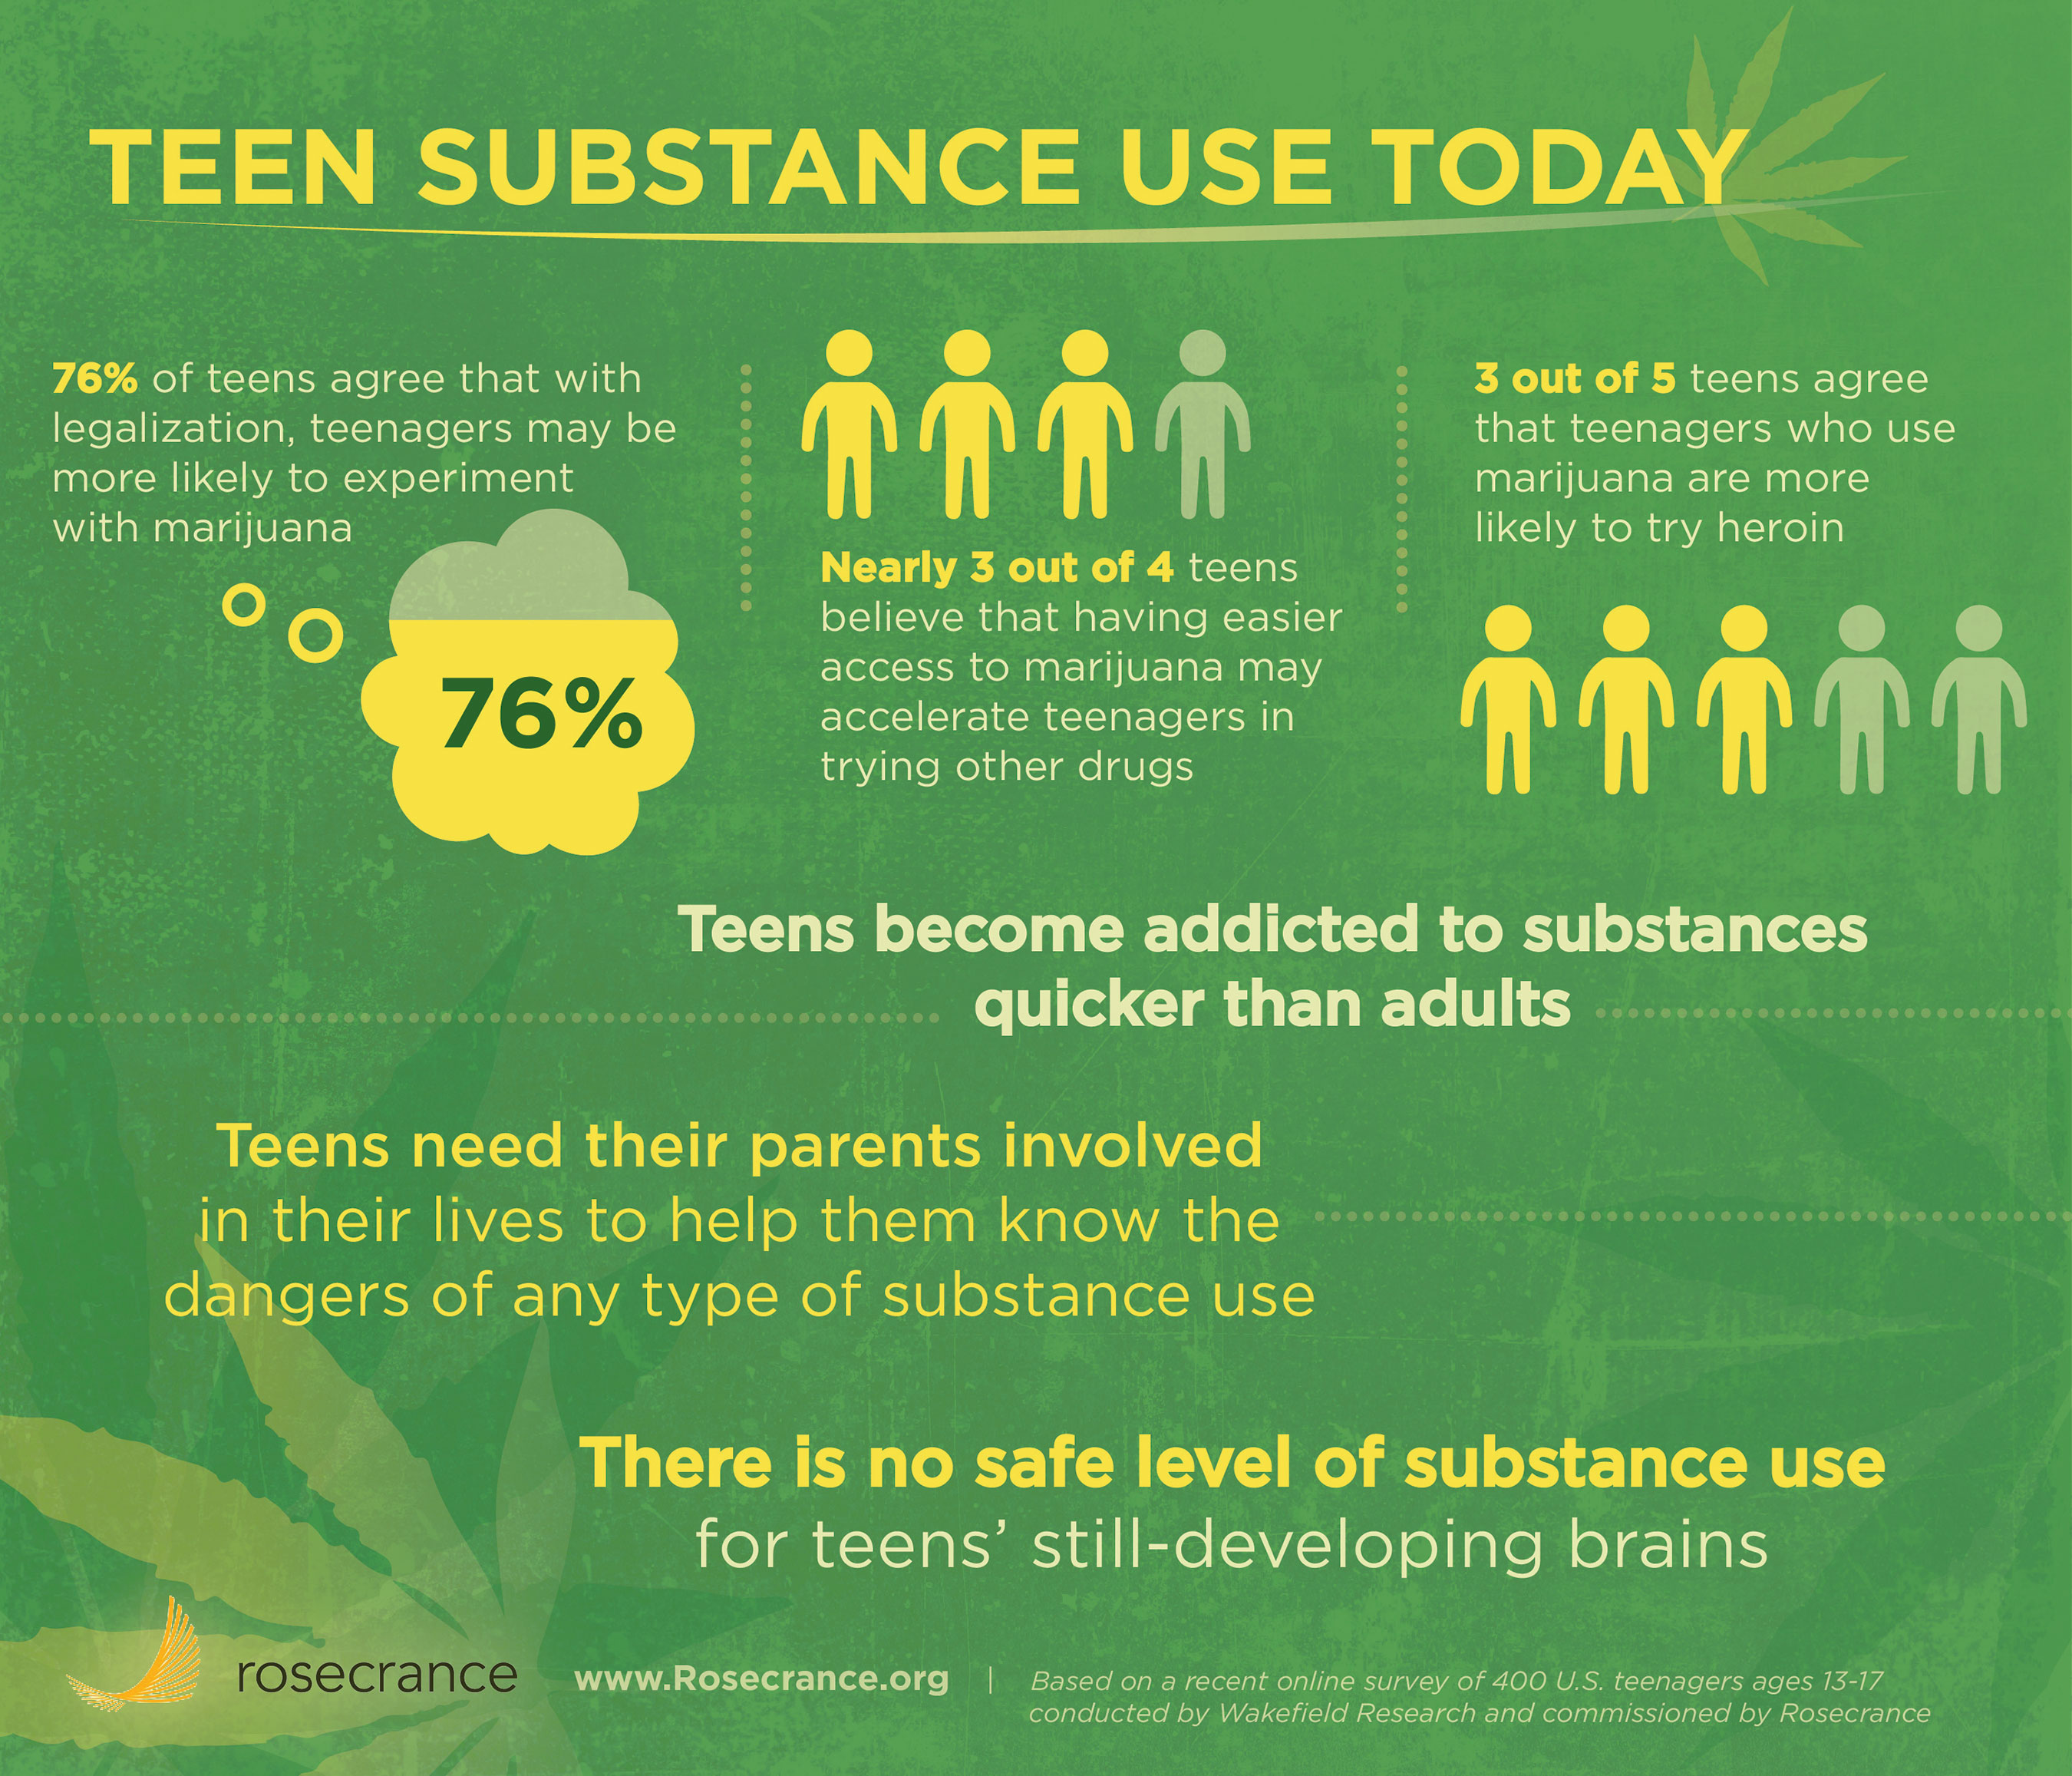 Most Teenagers Believe Legalization Of